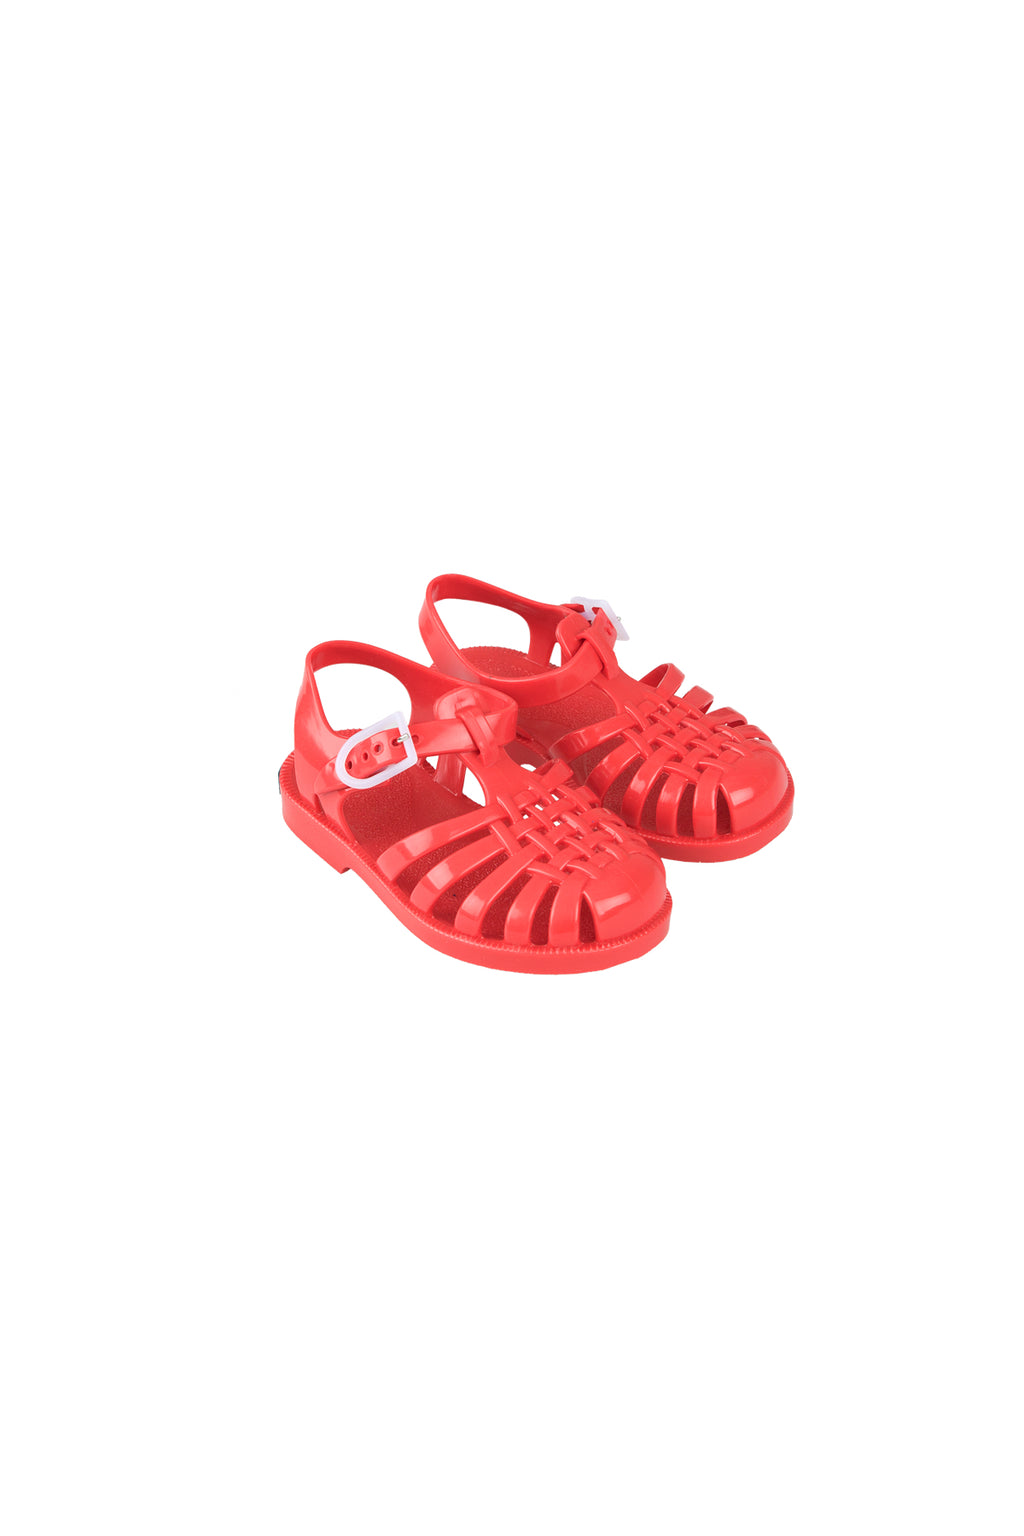 Tiny Cottons Jelly Sandals - Red